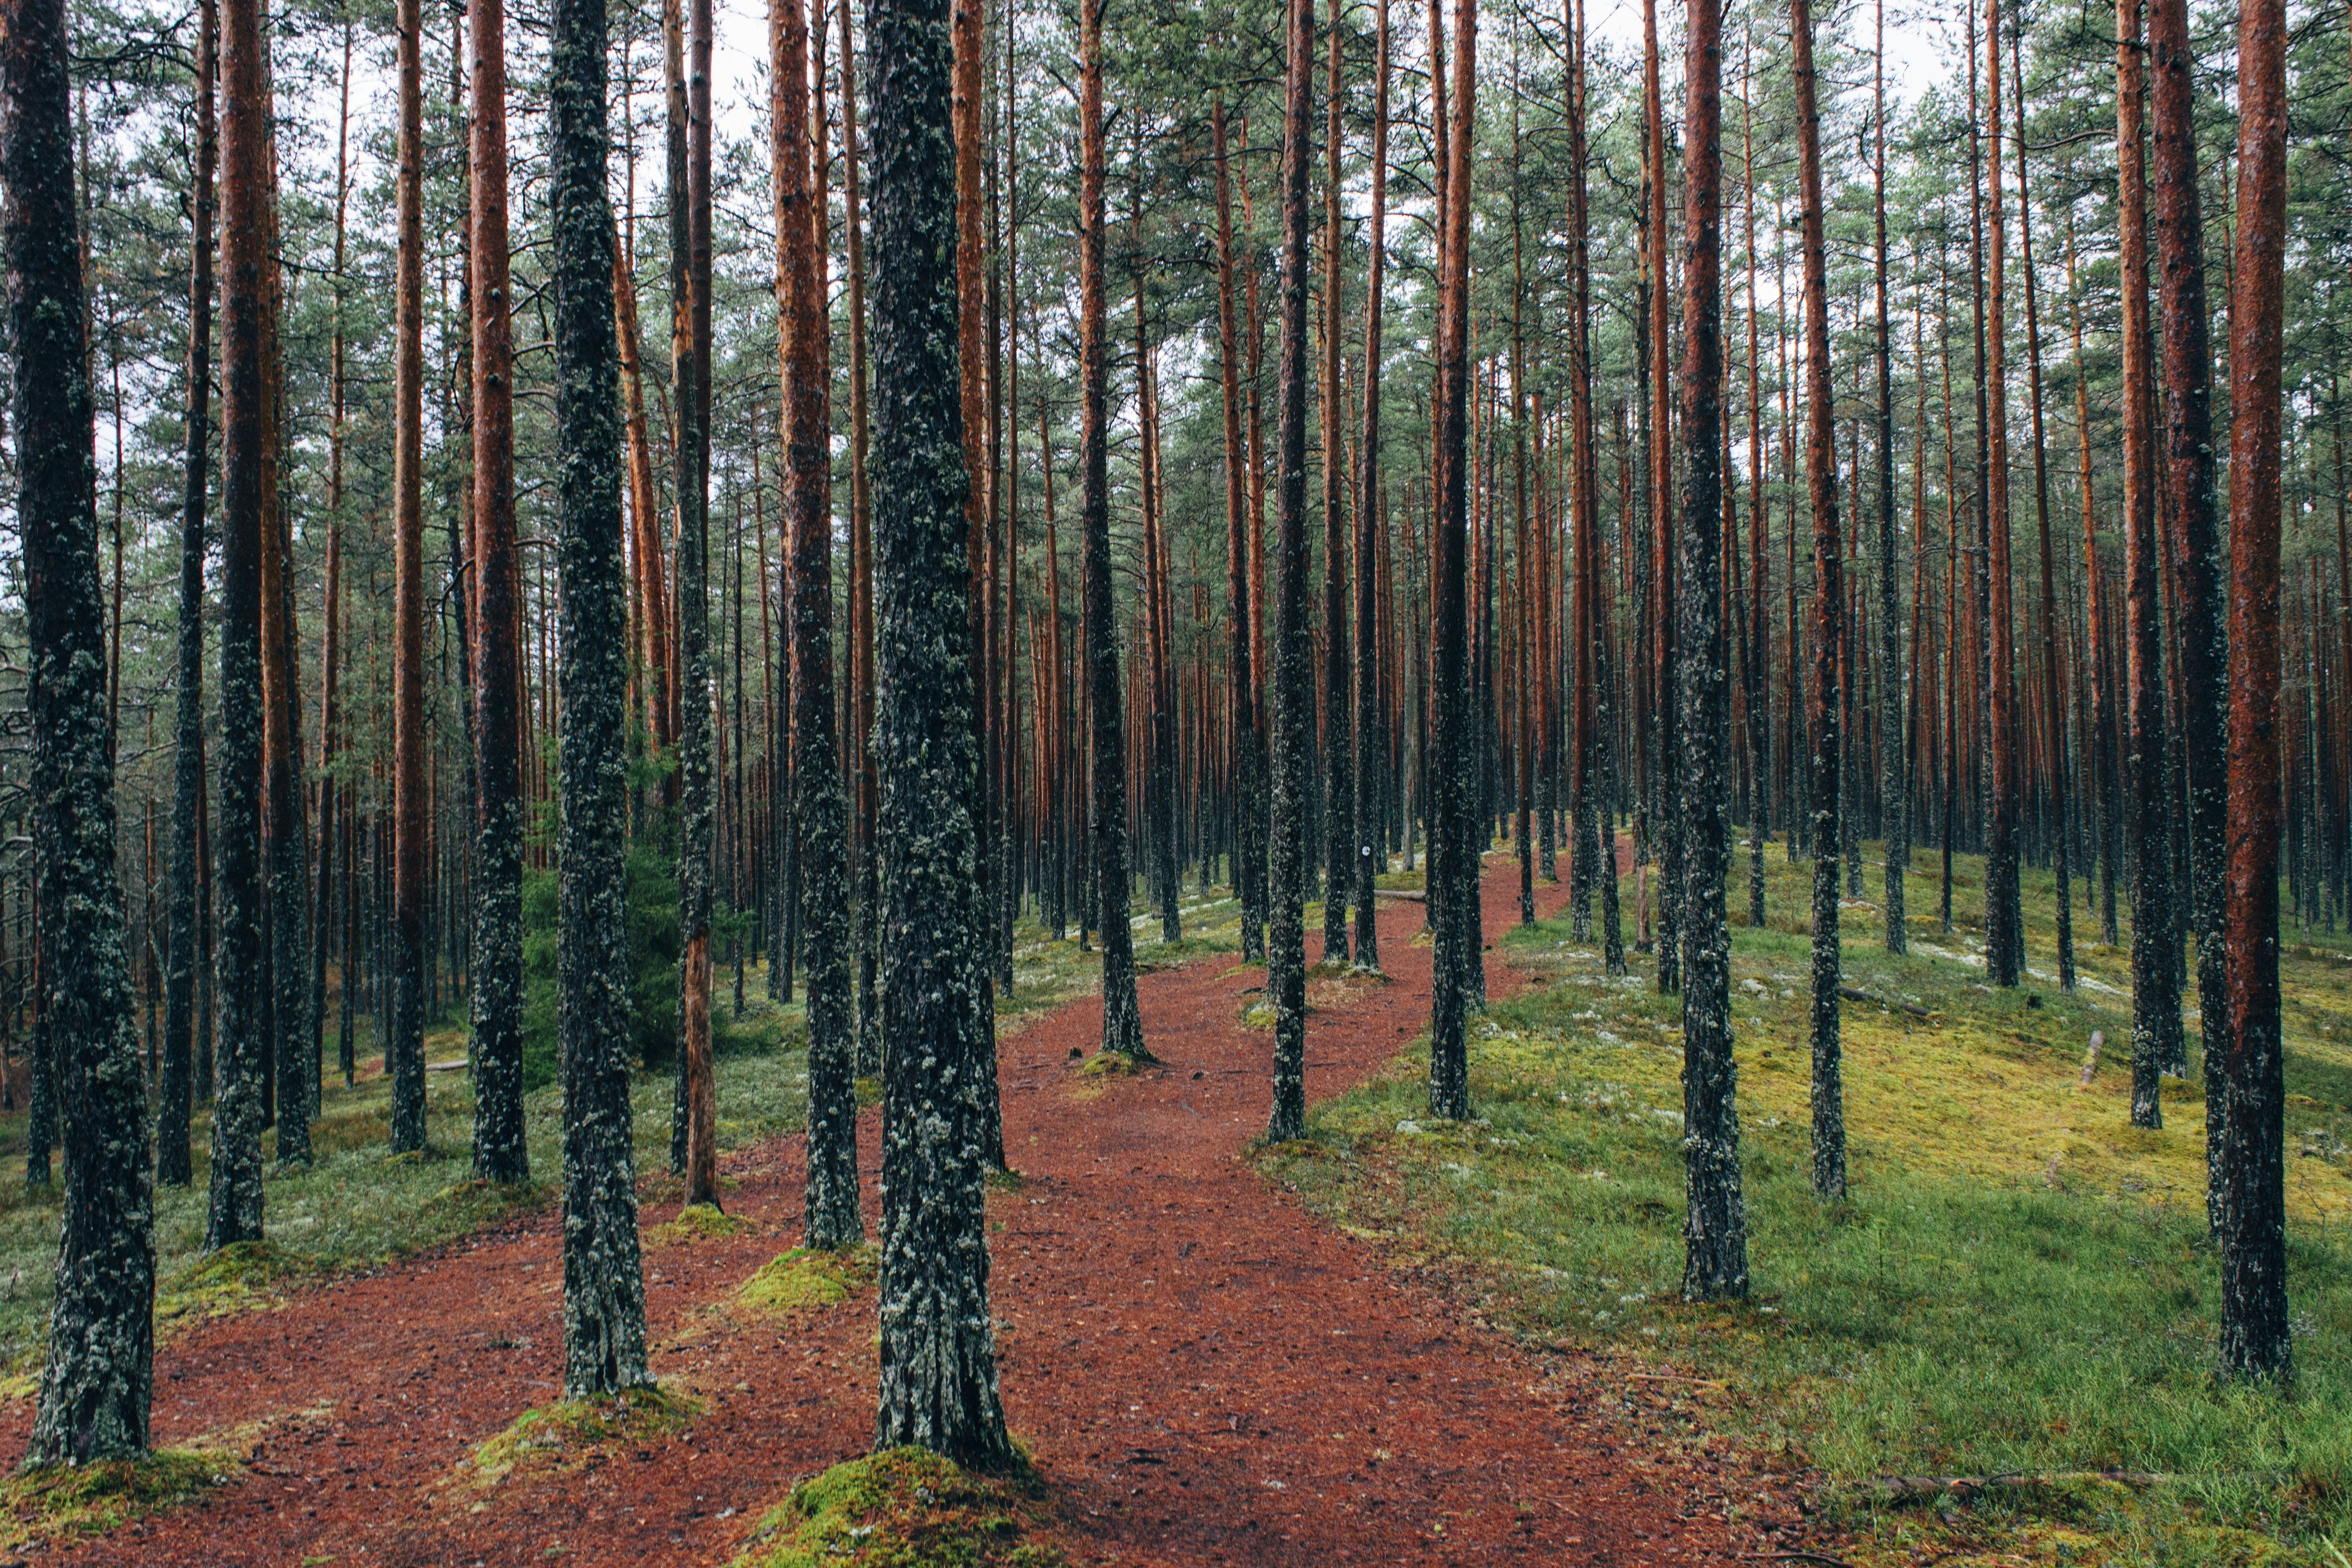 Free stock photo of nature, forest, trees, outdoors